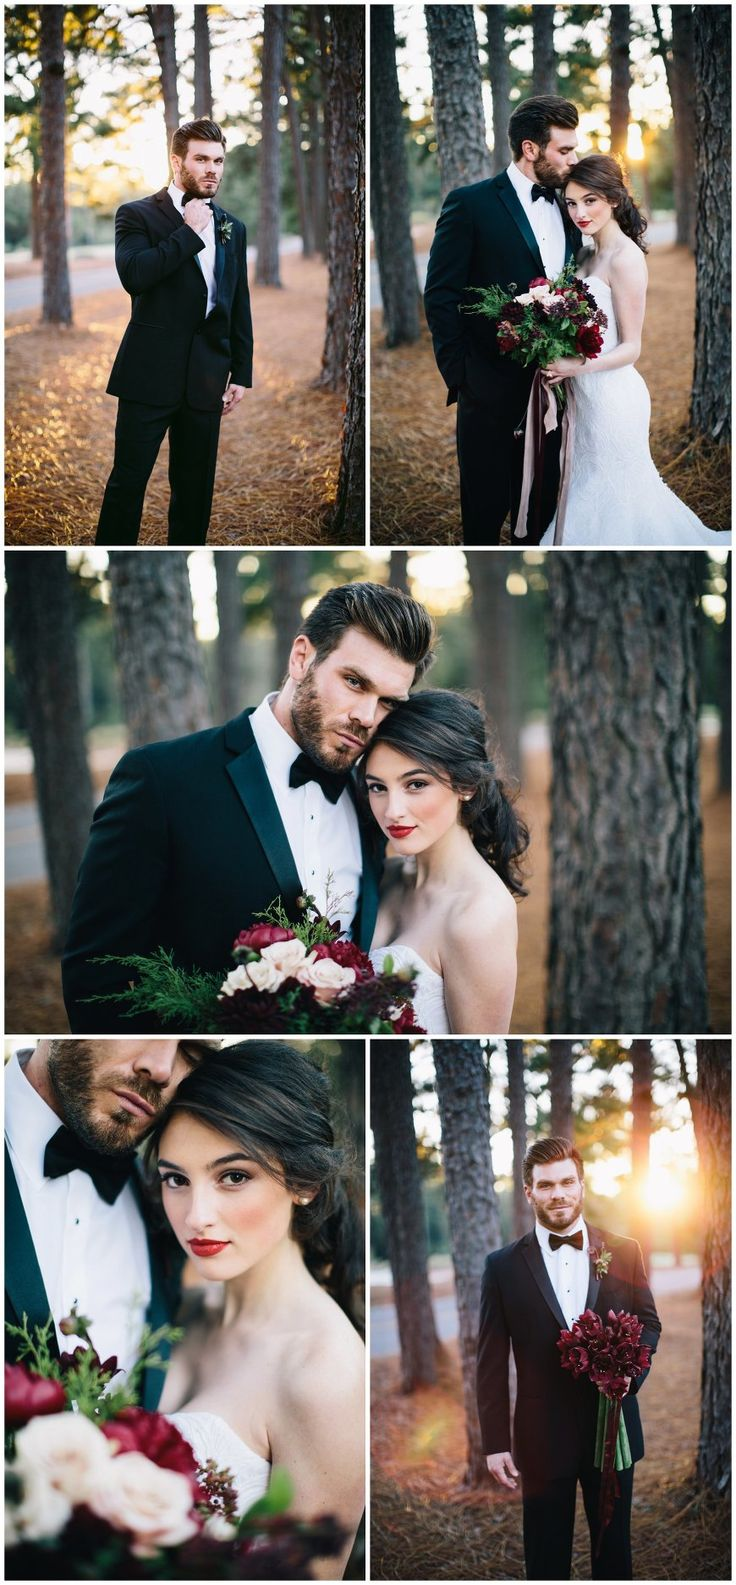 marsala wedding inspiration, gold and marsala wedding, woodlands wedding, woodland elopement, winter weddings, winter, casto photo